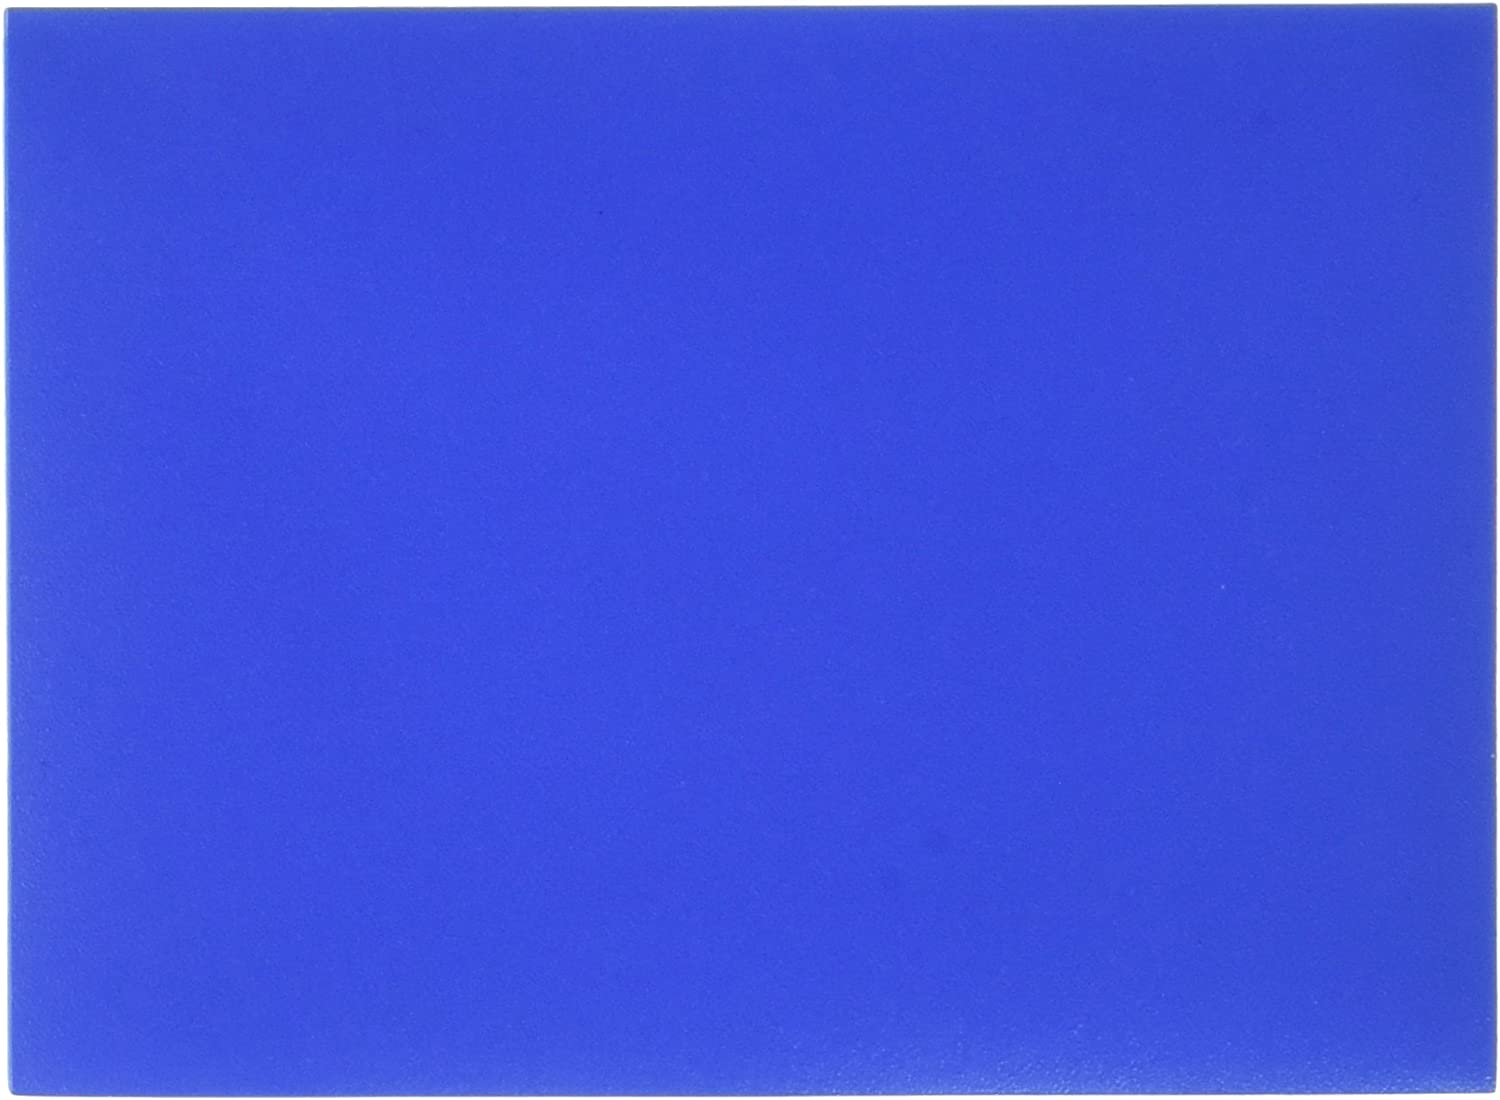 160 Star City Games Double Matte Standard Size MTG Card Game Sleeves  bluee (2 x 80 ct. Packs)